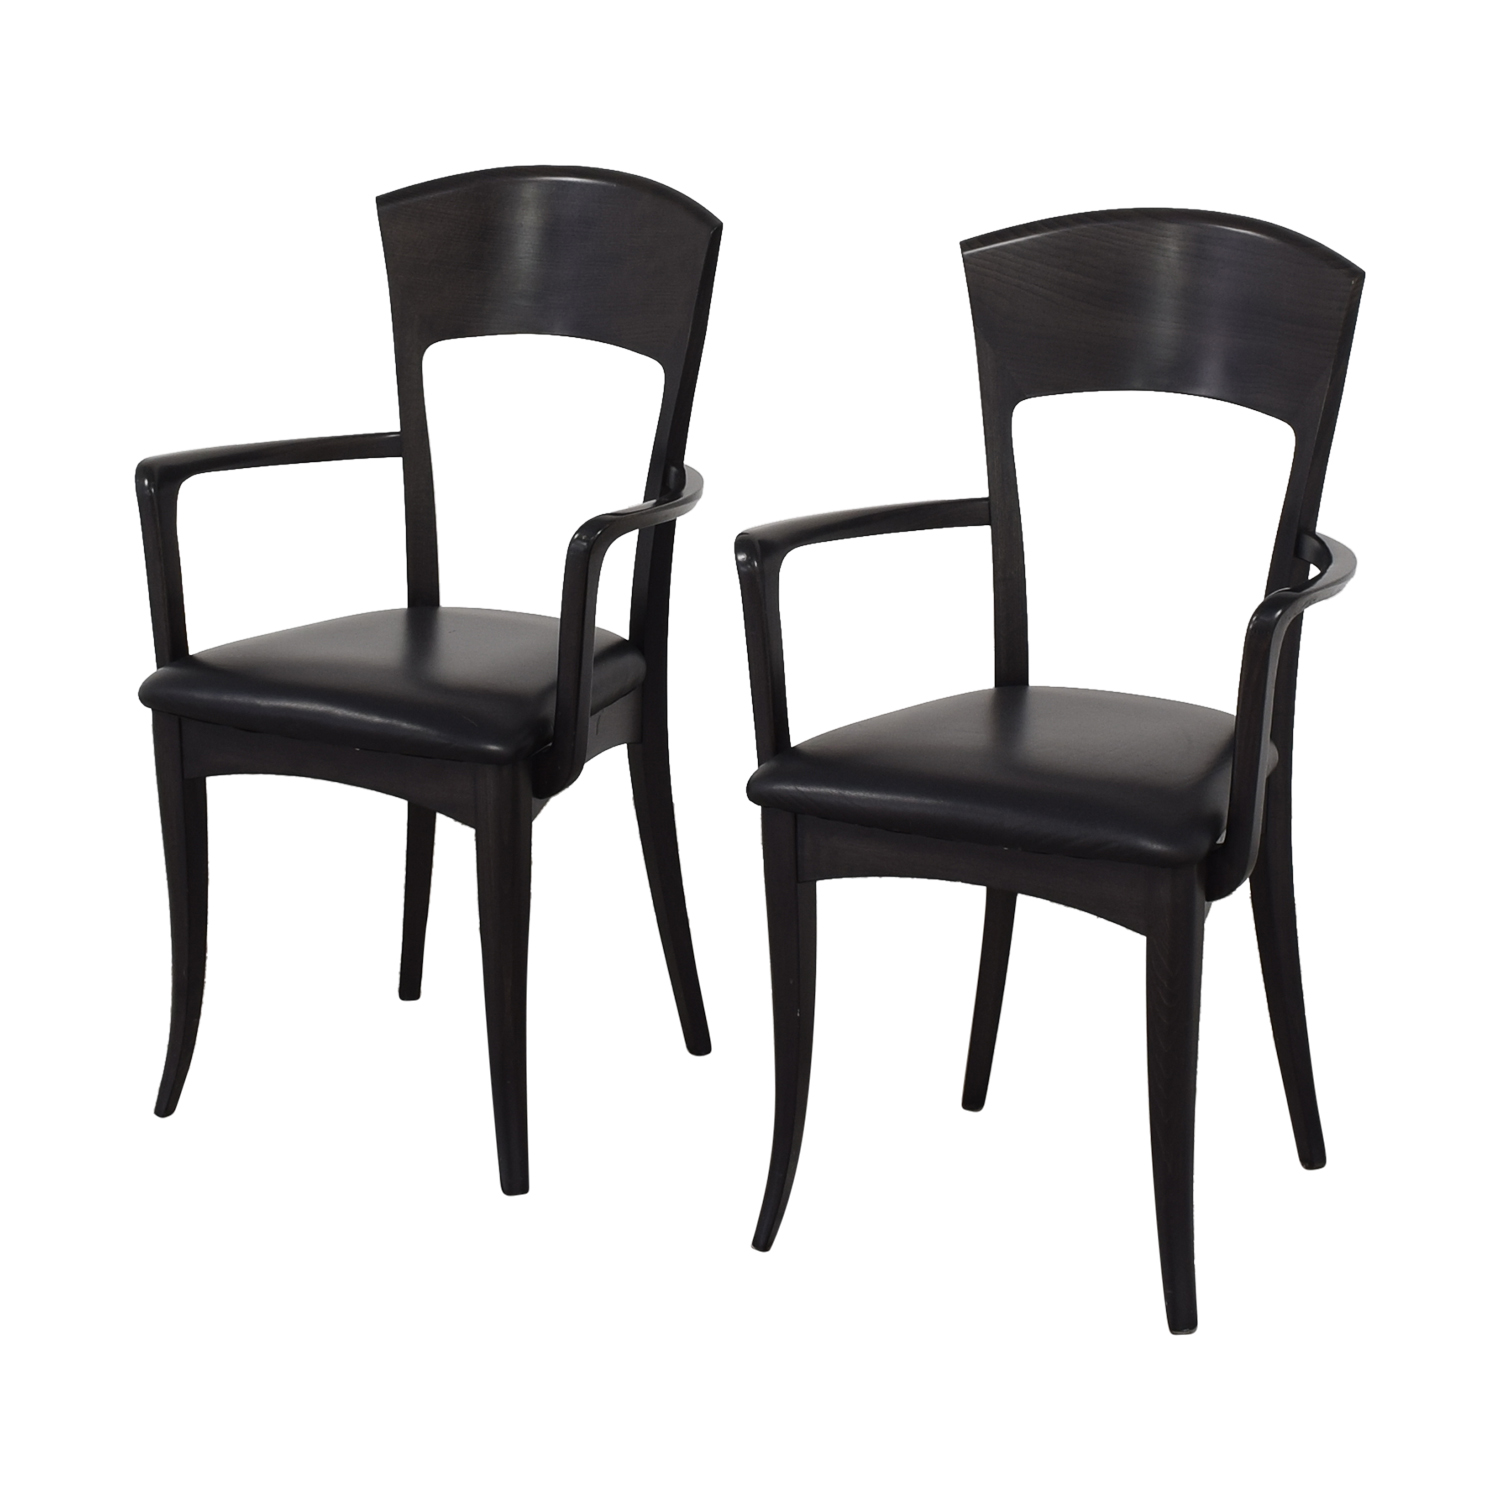 Room & Board A Sibau Dining Arm Chairs on sale